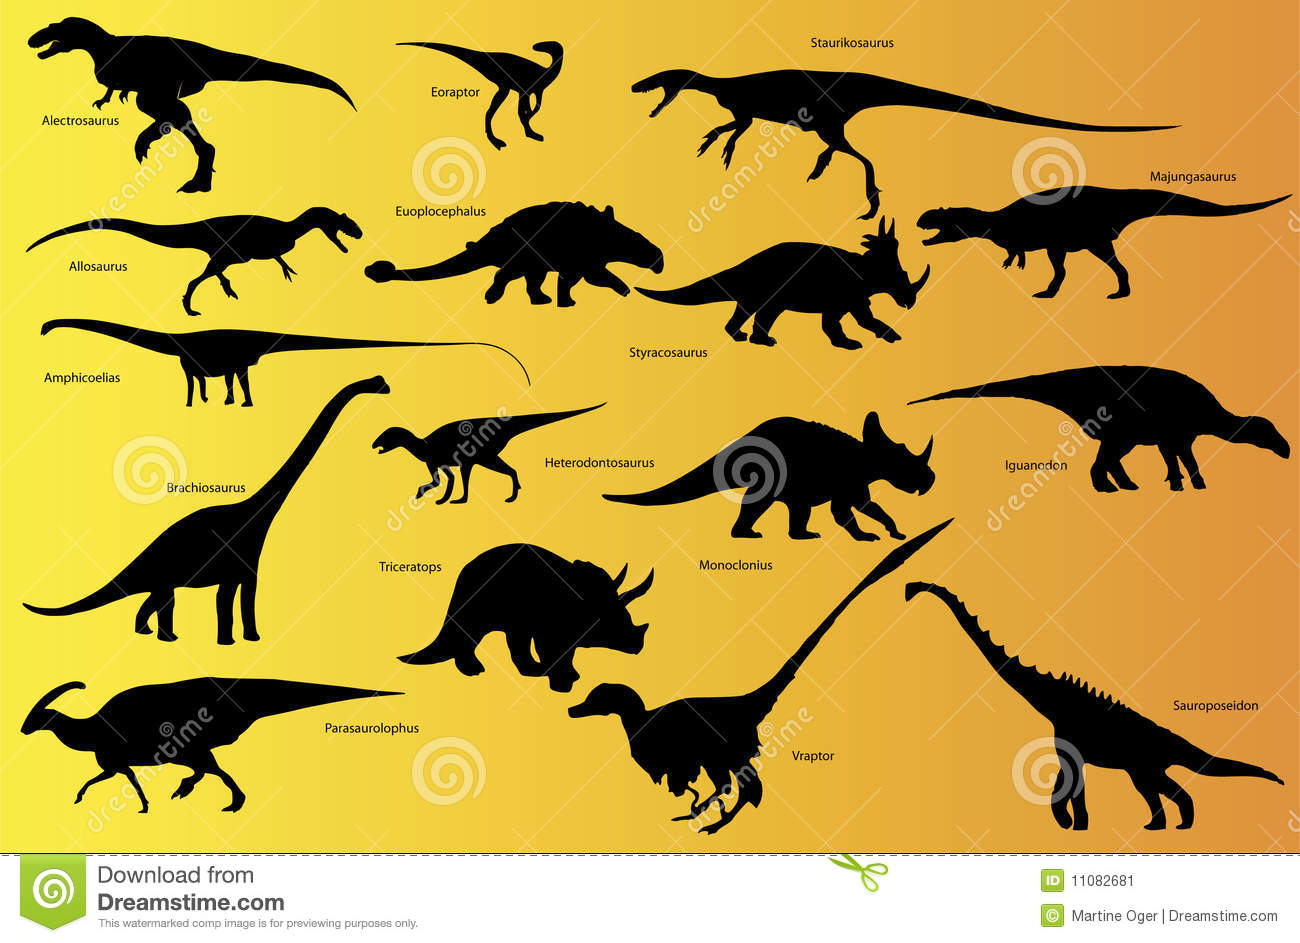 Dinosaur With Name Stock Vector Illustration Of Monster 11082681 Dinosaur names with pictures, a complete online reference. dreamstime com